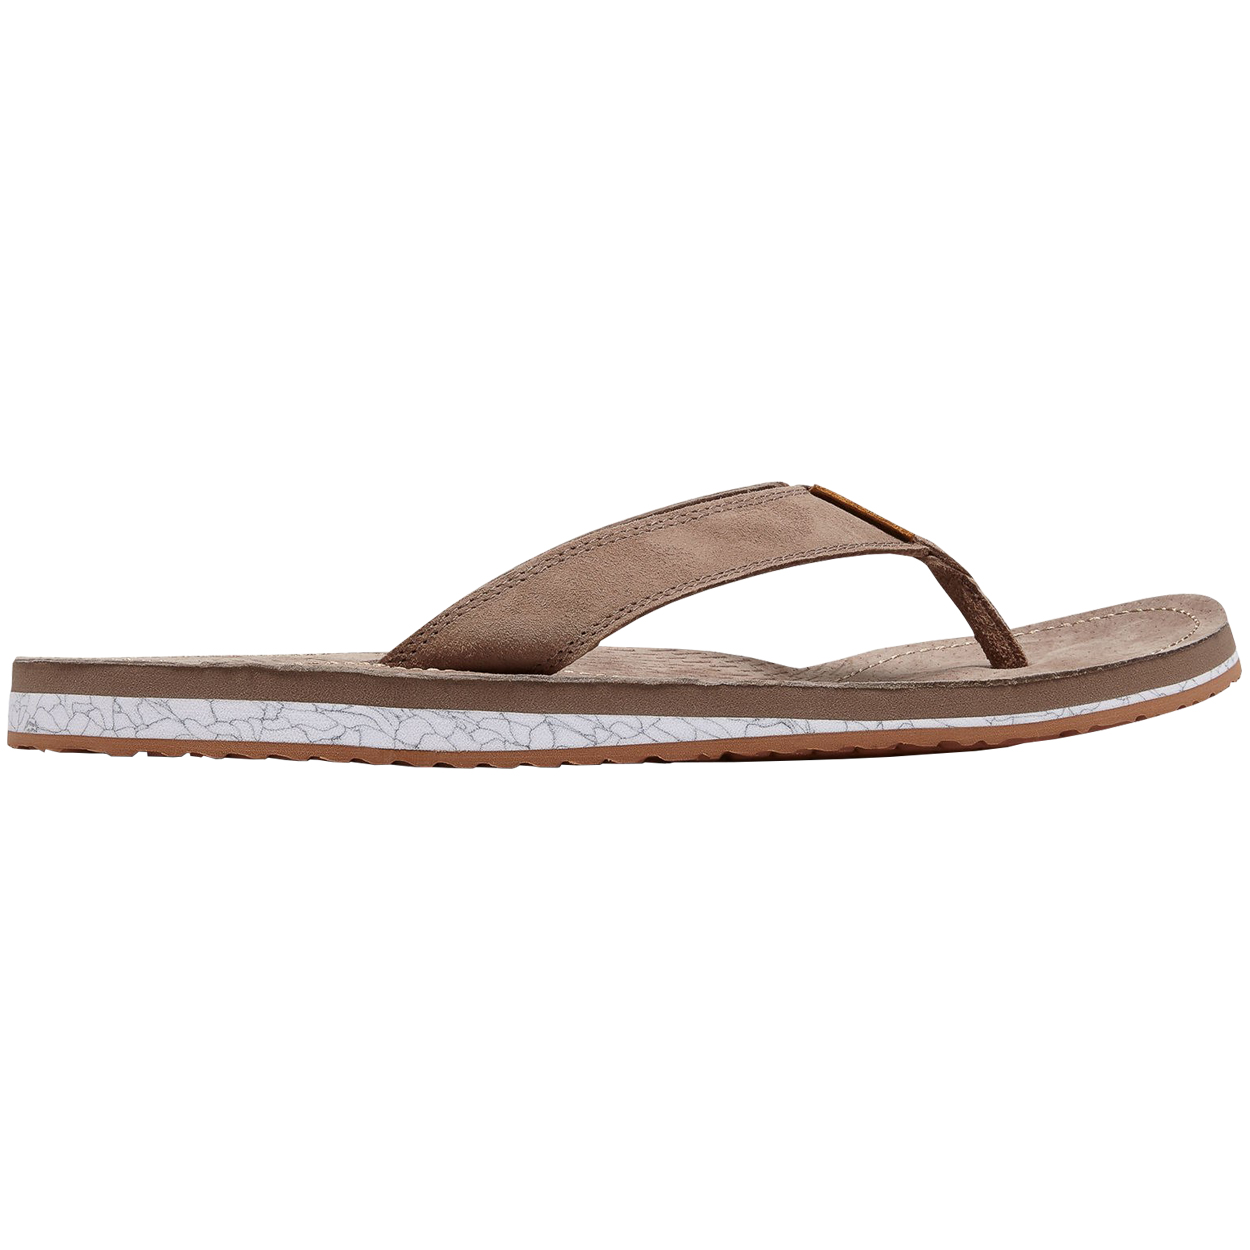 New-Balance-Golf-Men-039-s-Classic-Thong-Flip-Flop-Sandal-Brand-New thumbnail 6